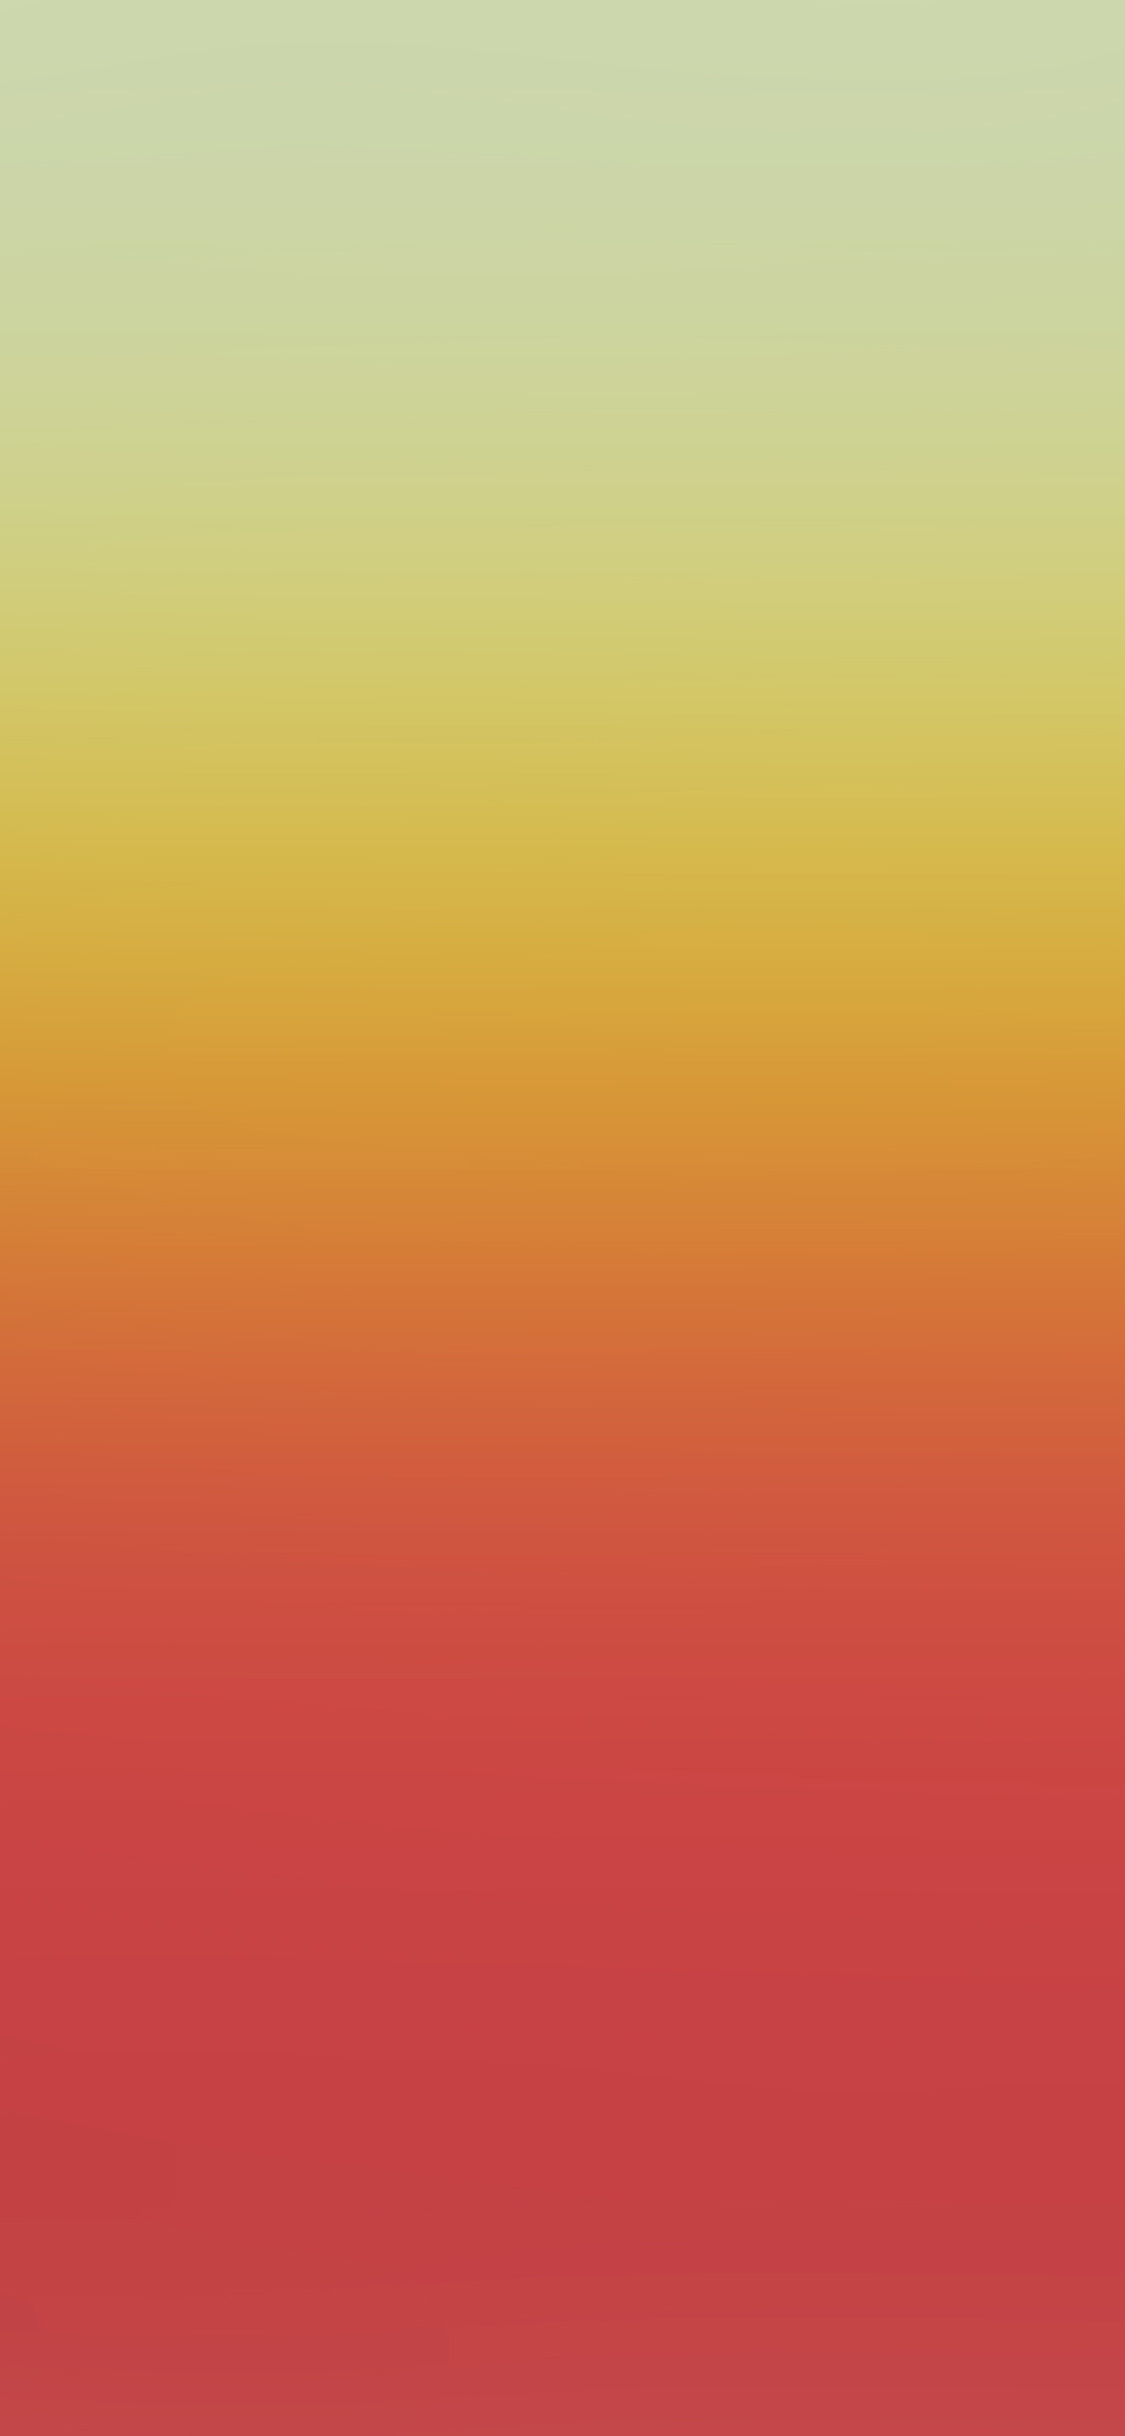 Iphone 6s Gold Wallpaper Sh35 Sex On The Beach Cocktail Red Yellow Gradation Blur